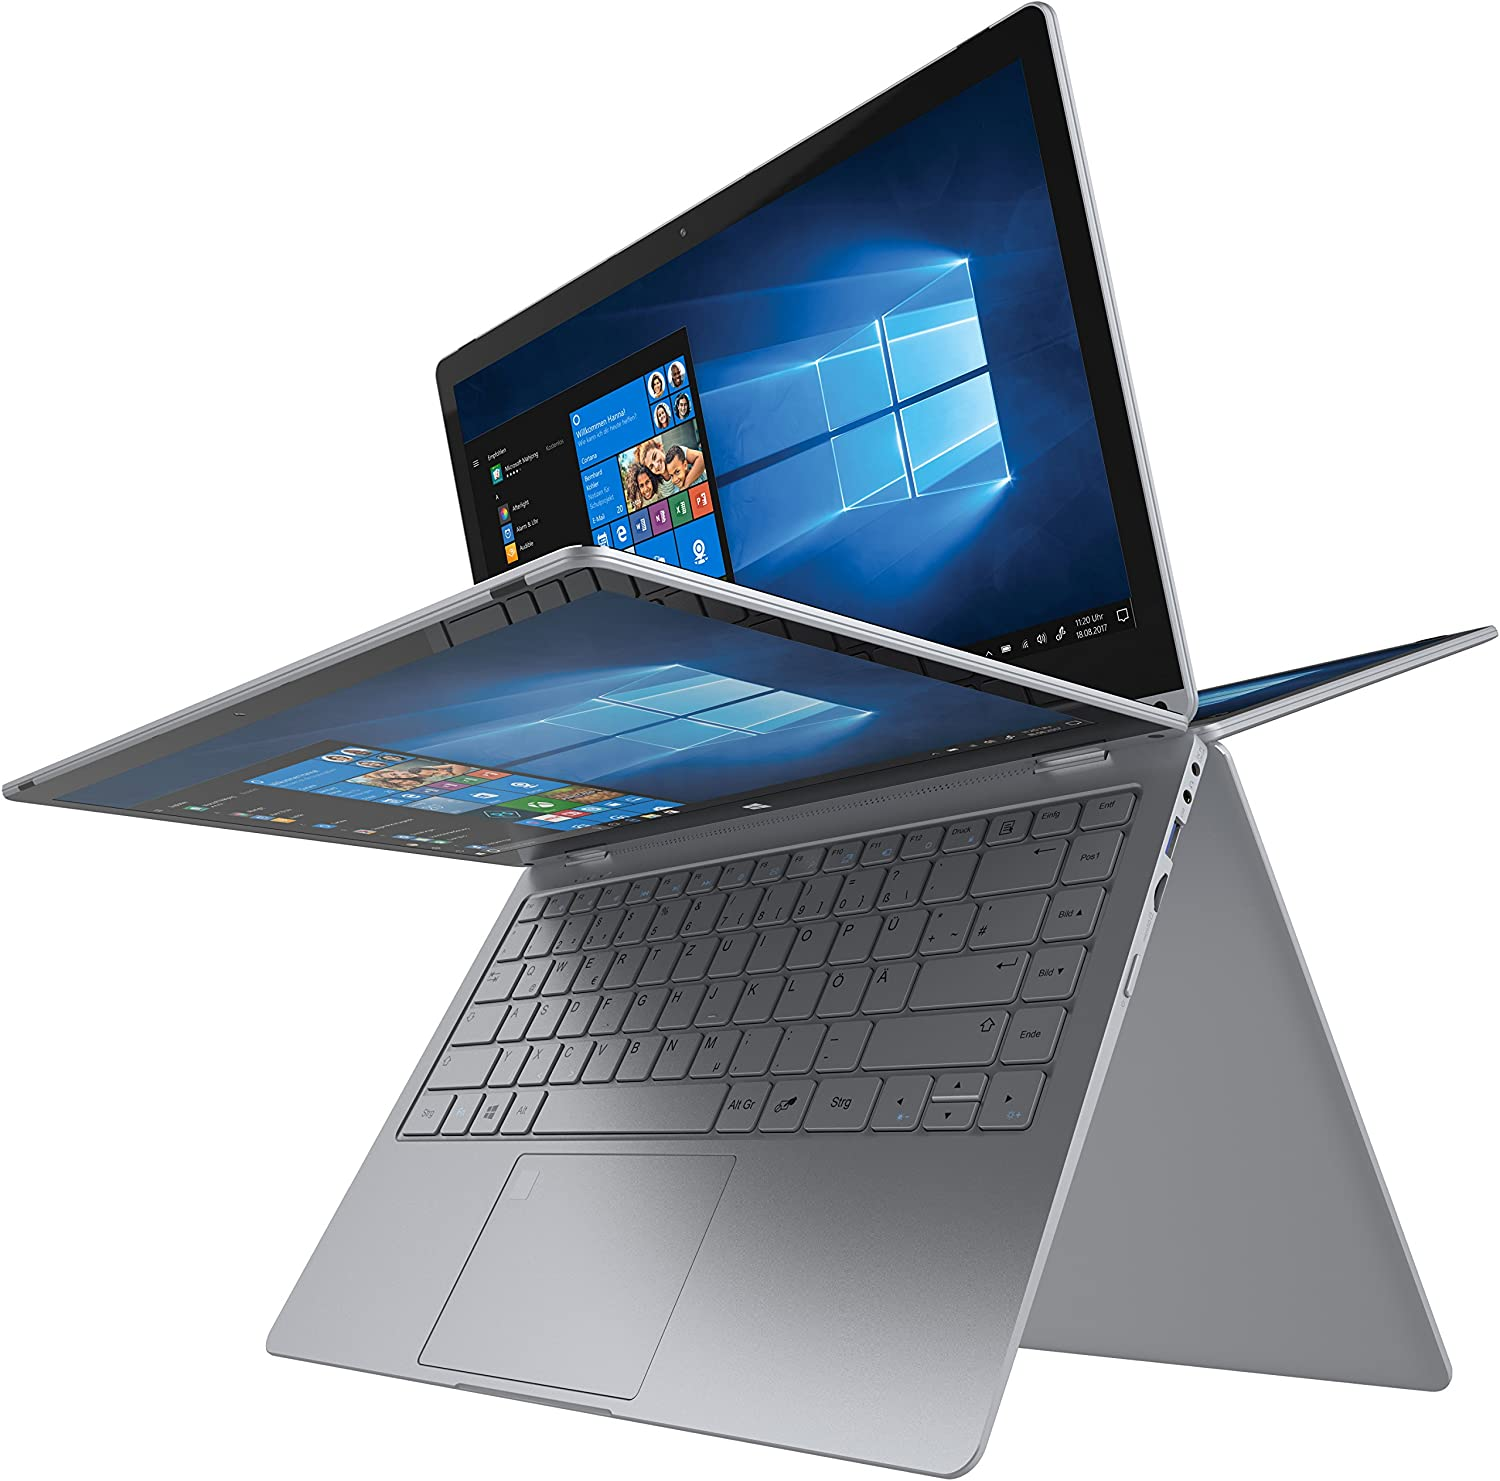 TrekStor PrimeBook C13 13,3 4GB 64GB Win10 WiFi